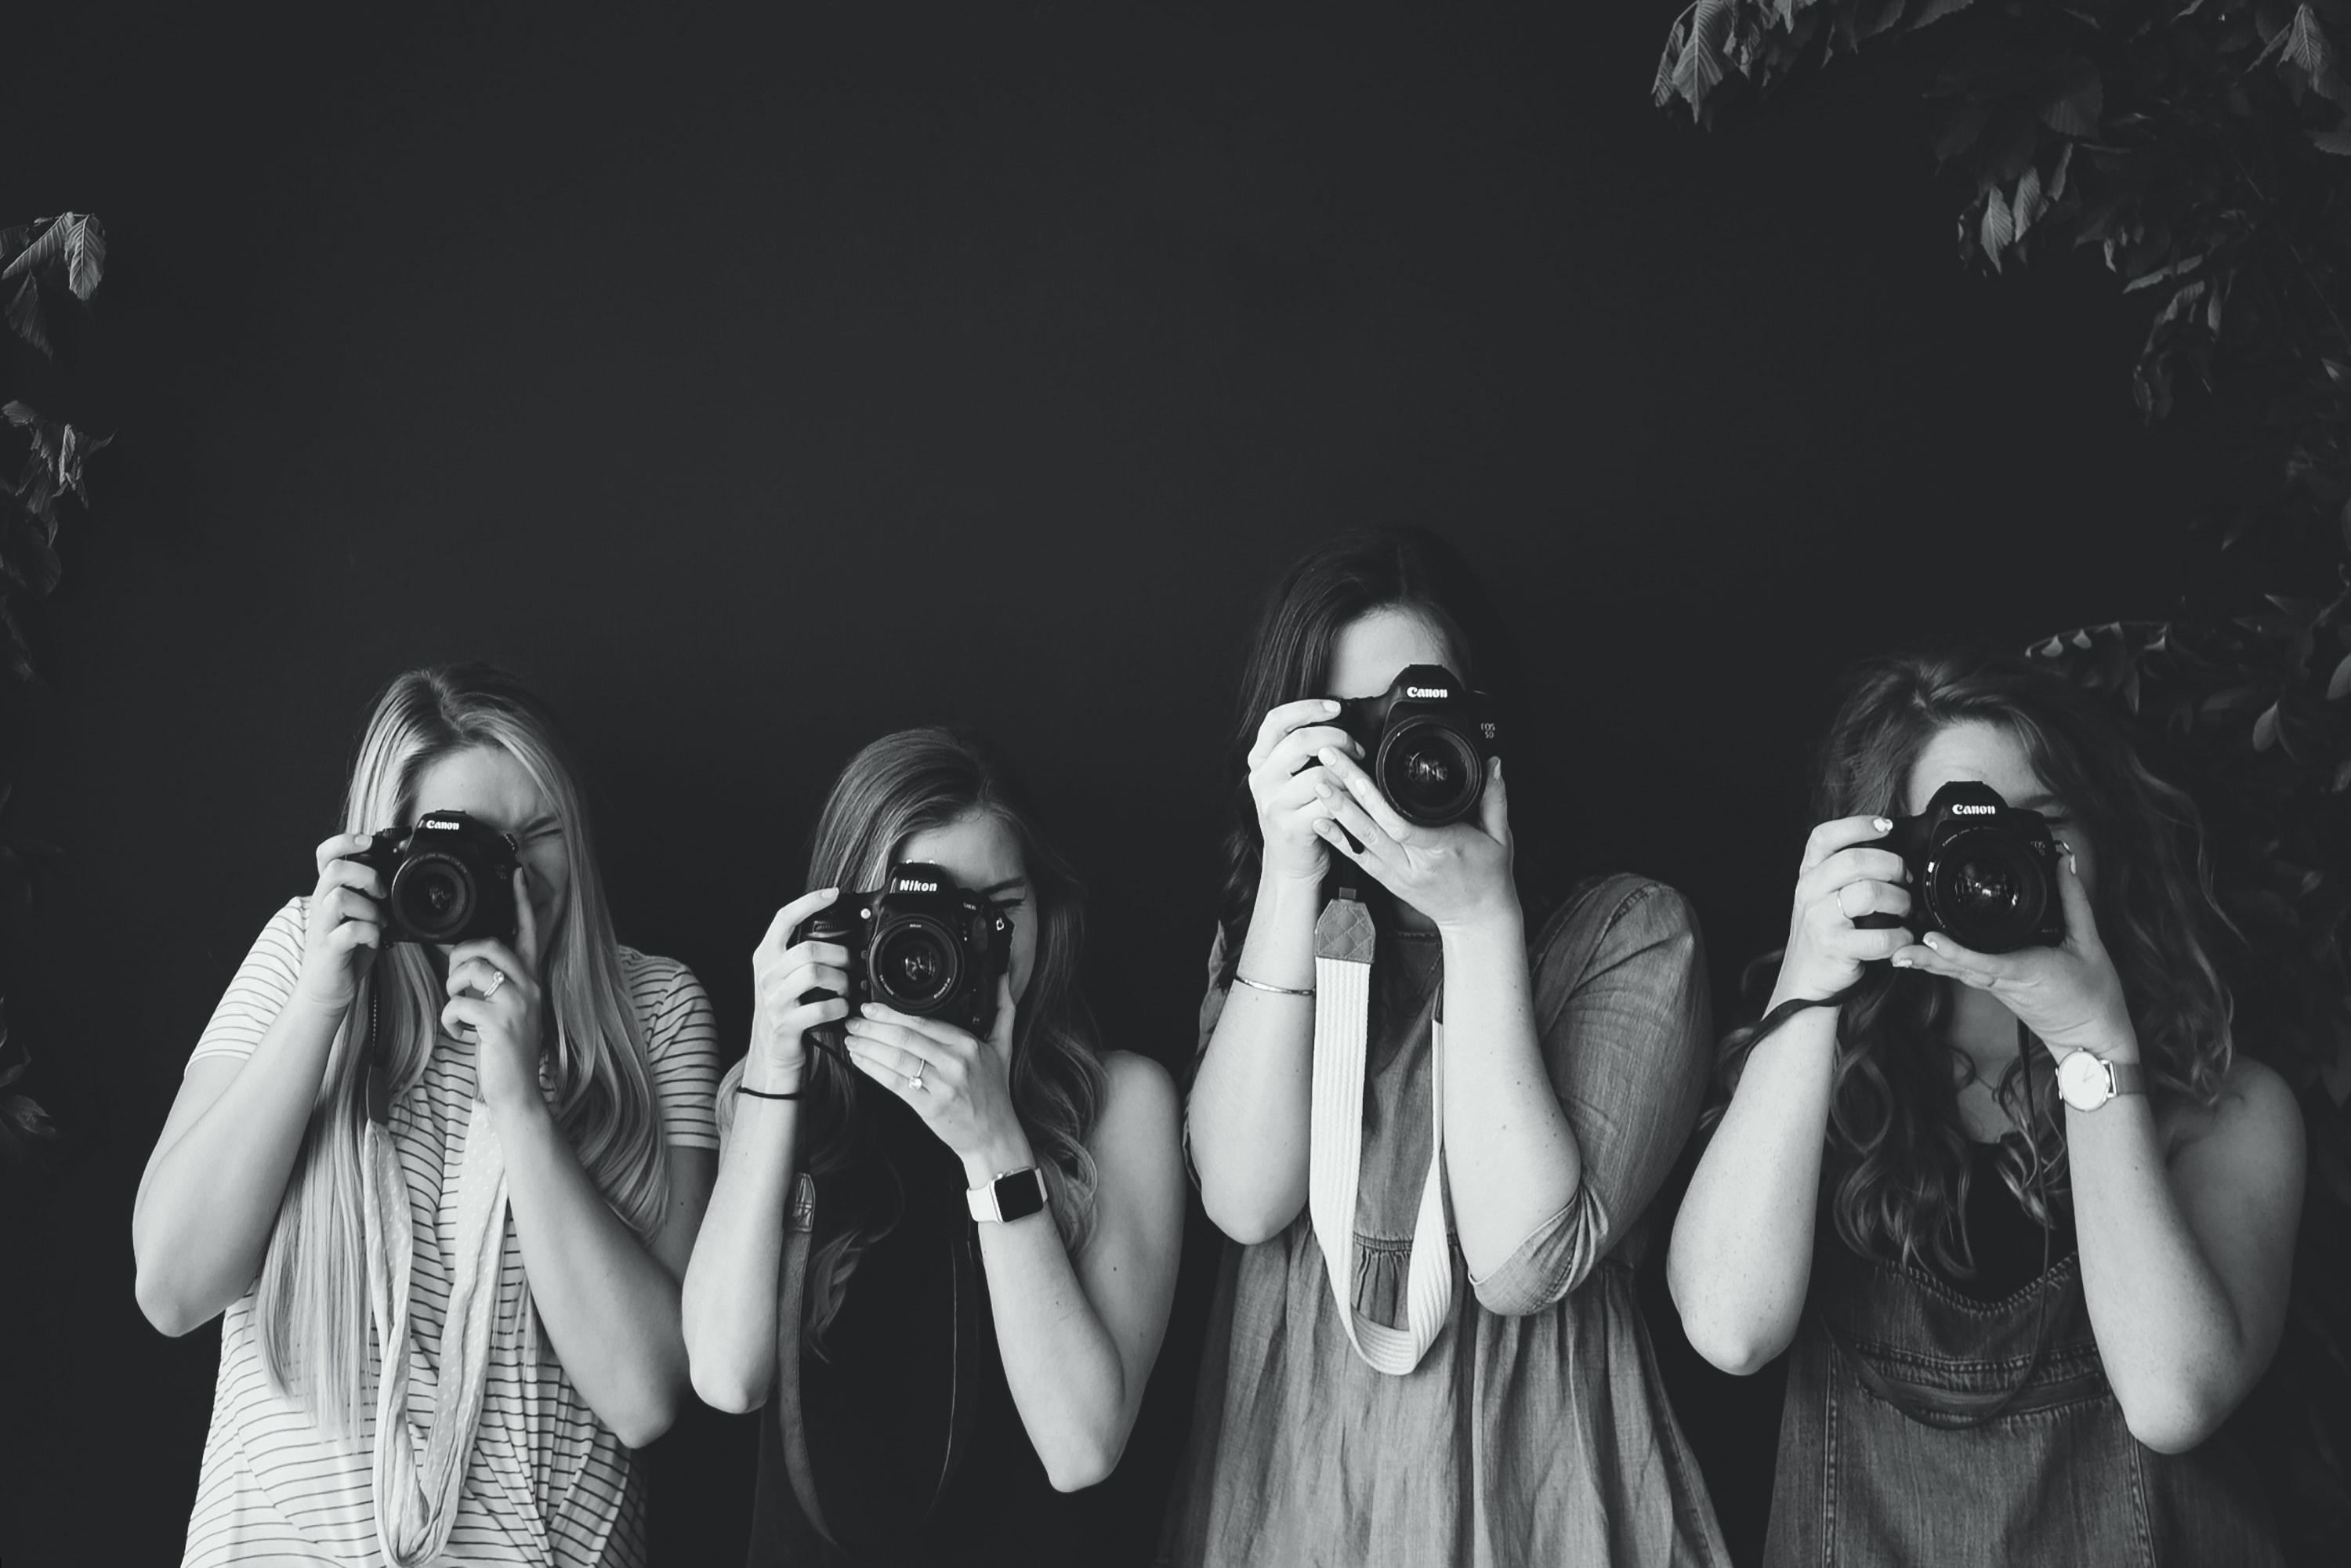 grayscale photography of four women taking photos